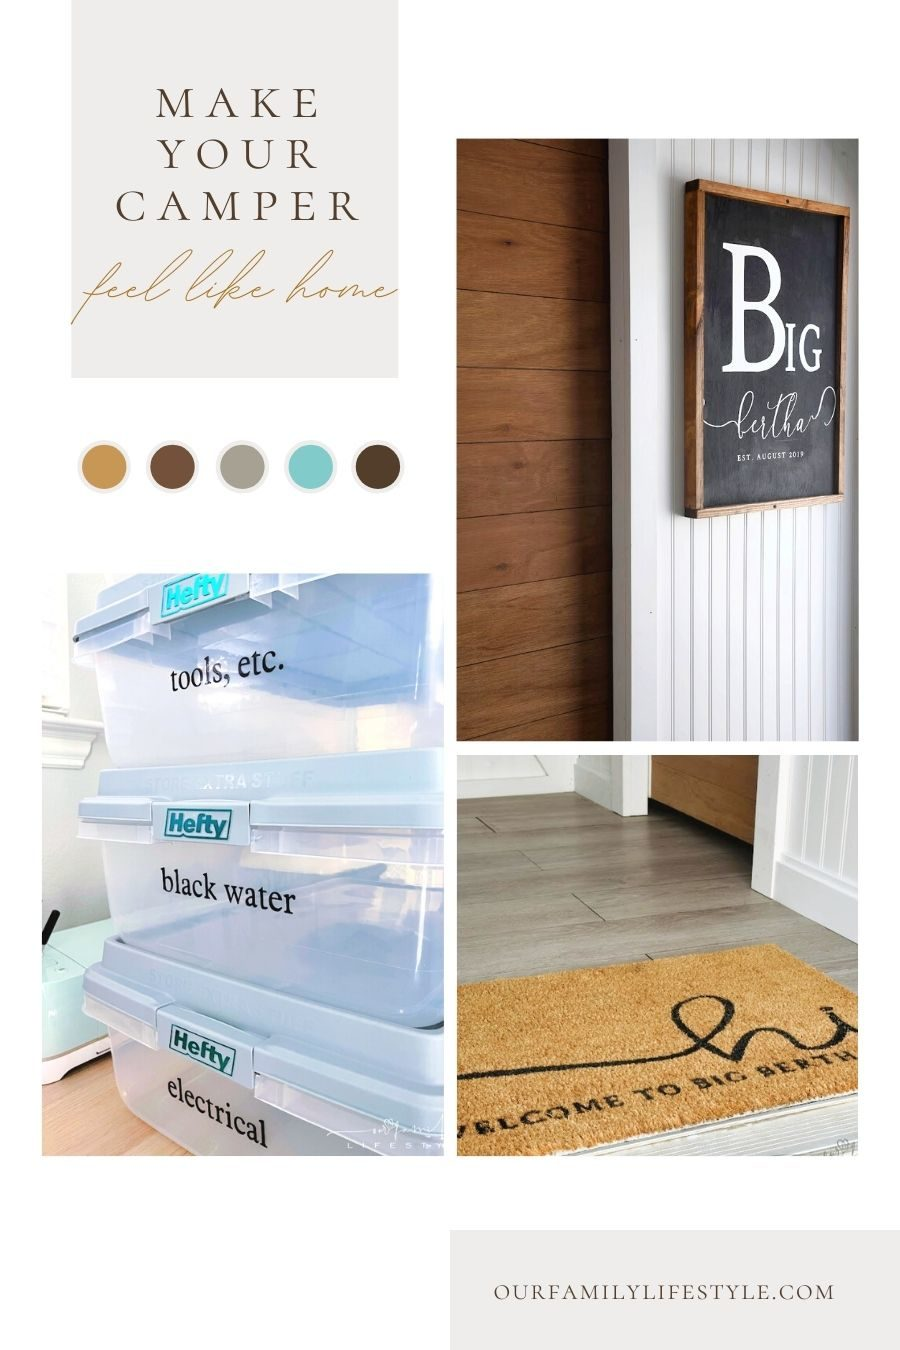 Cricut-Made RV Accessories to Make Your Camper Feel Like Home